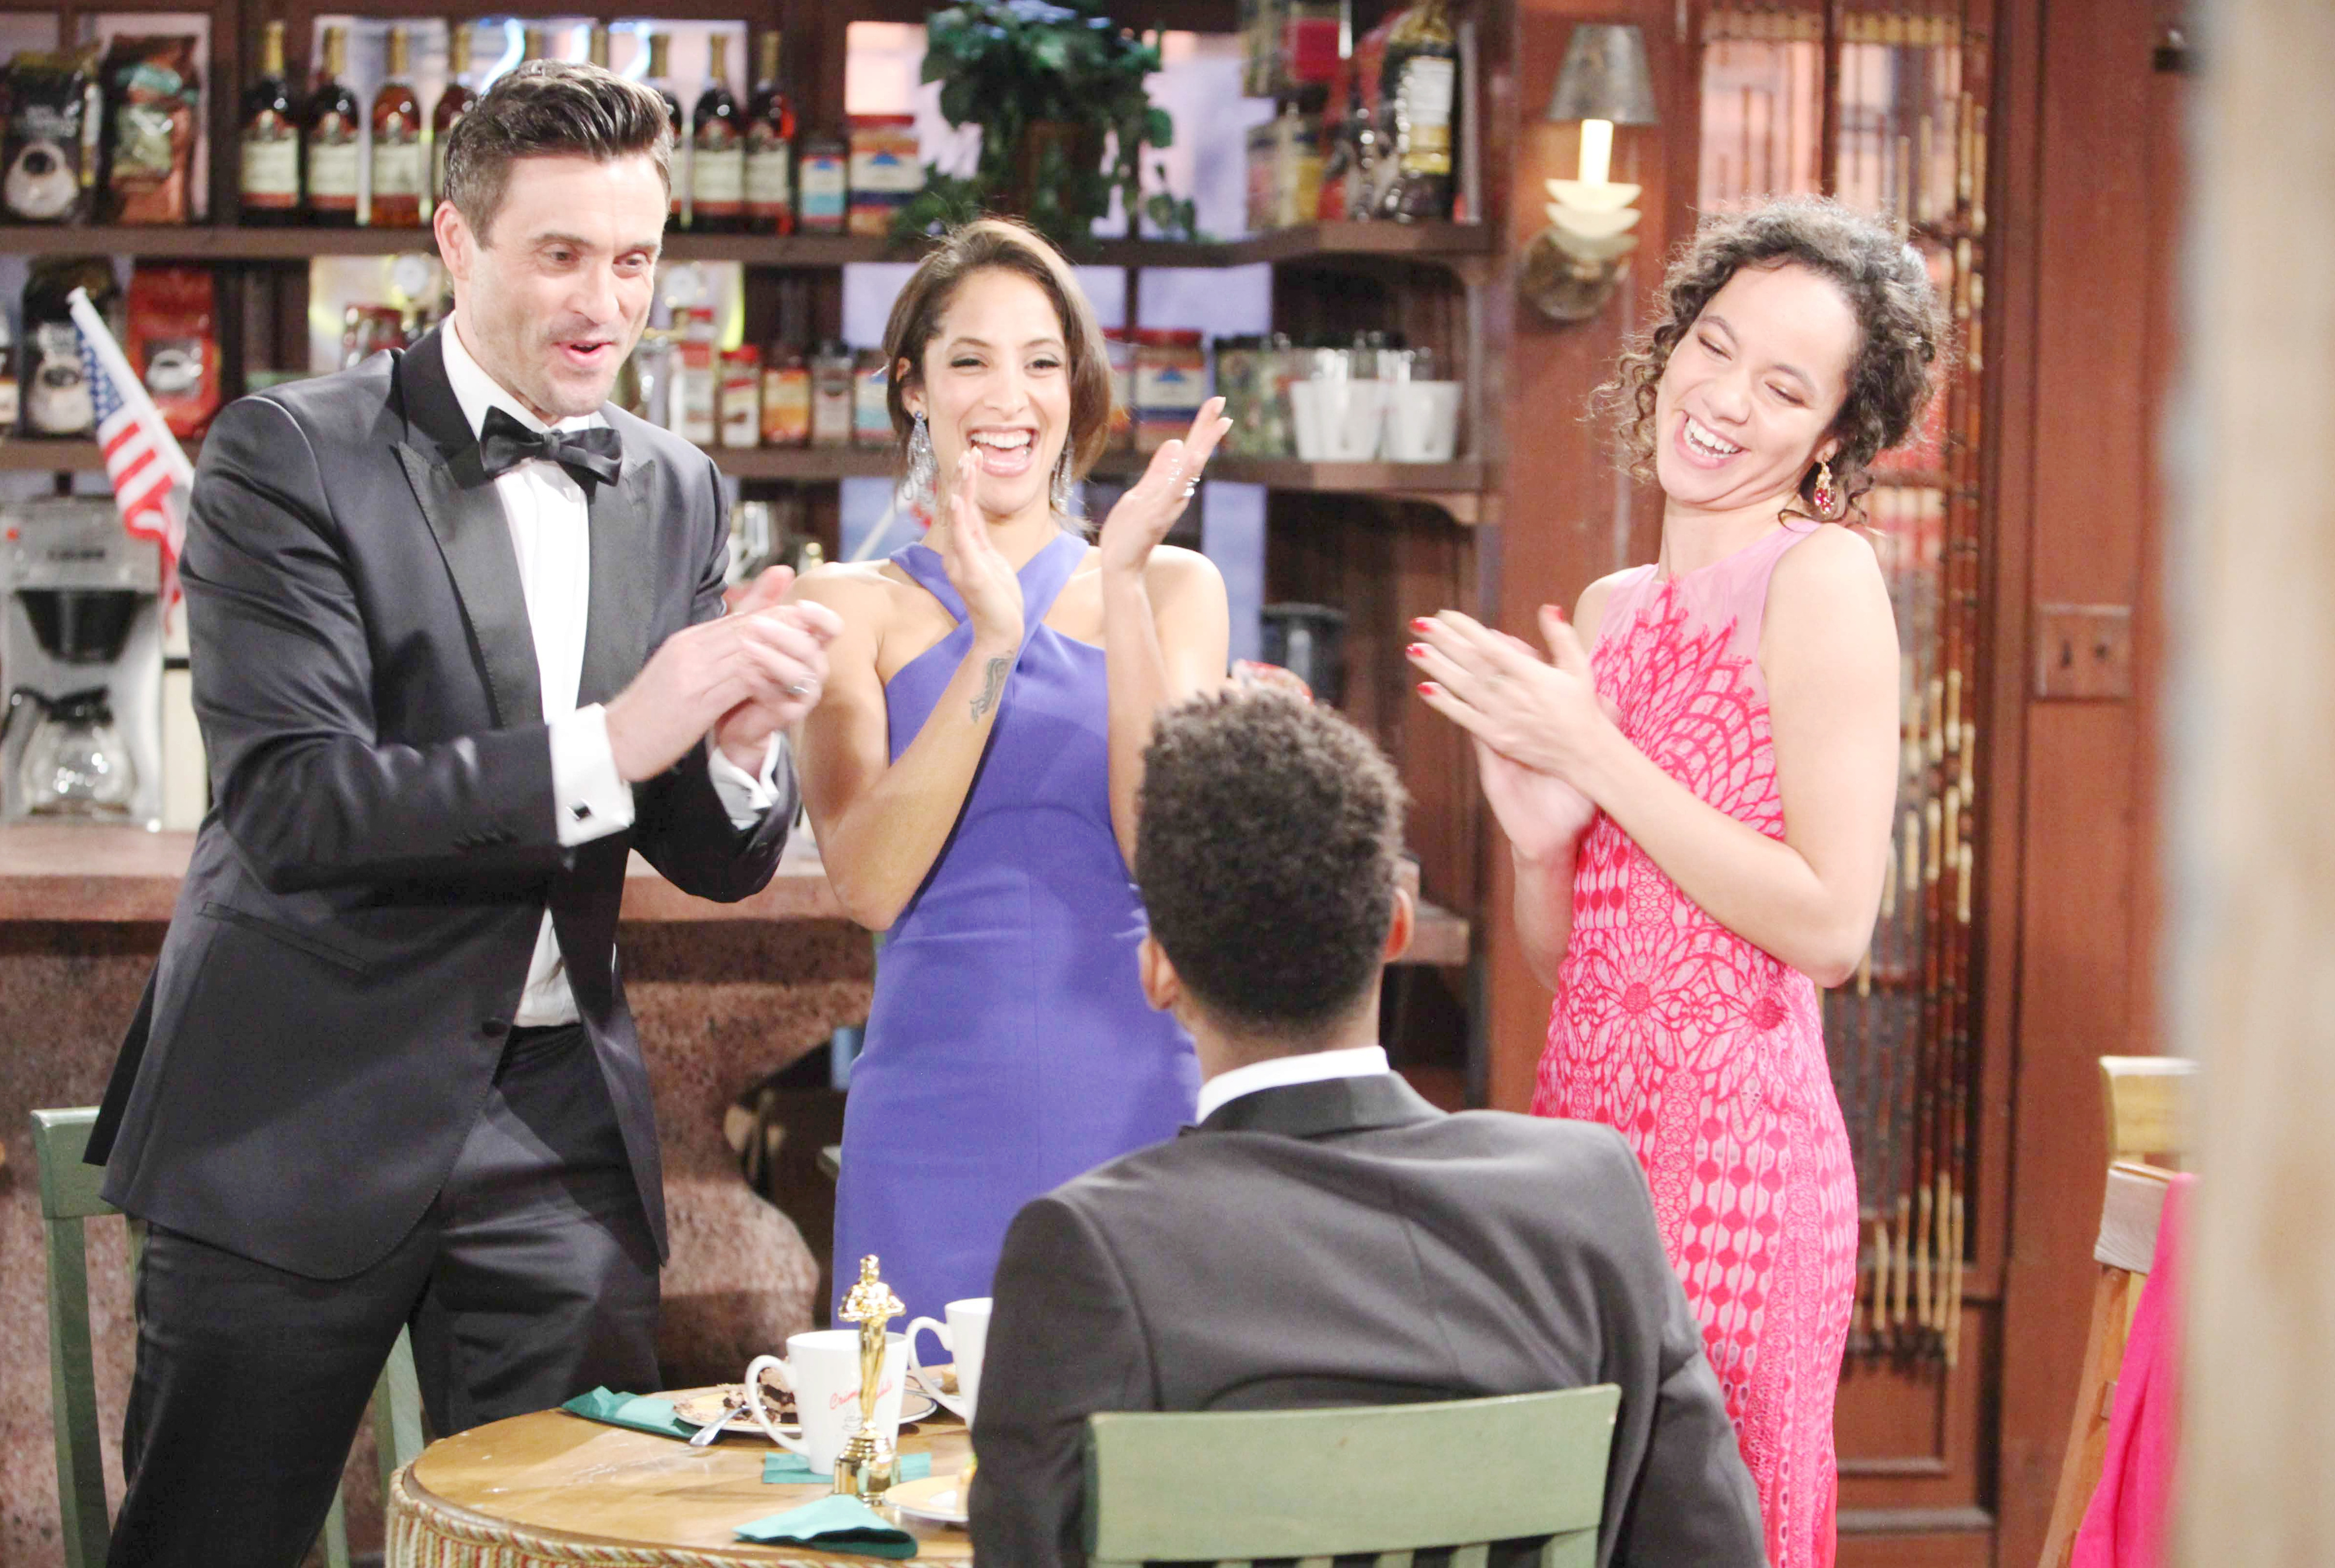 "Daniel Goddard, Christel Khalil, Noah ALexander Gerry, Lexie Stevenson""The Young and the Restless"" Set CBS television CityLos Angeles04/04/18© Howard Wise/jpistudios.com310-657-9661Episode # 11426U.S. Airdate 05/09/18"